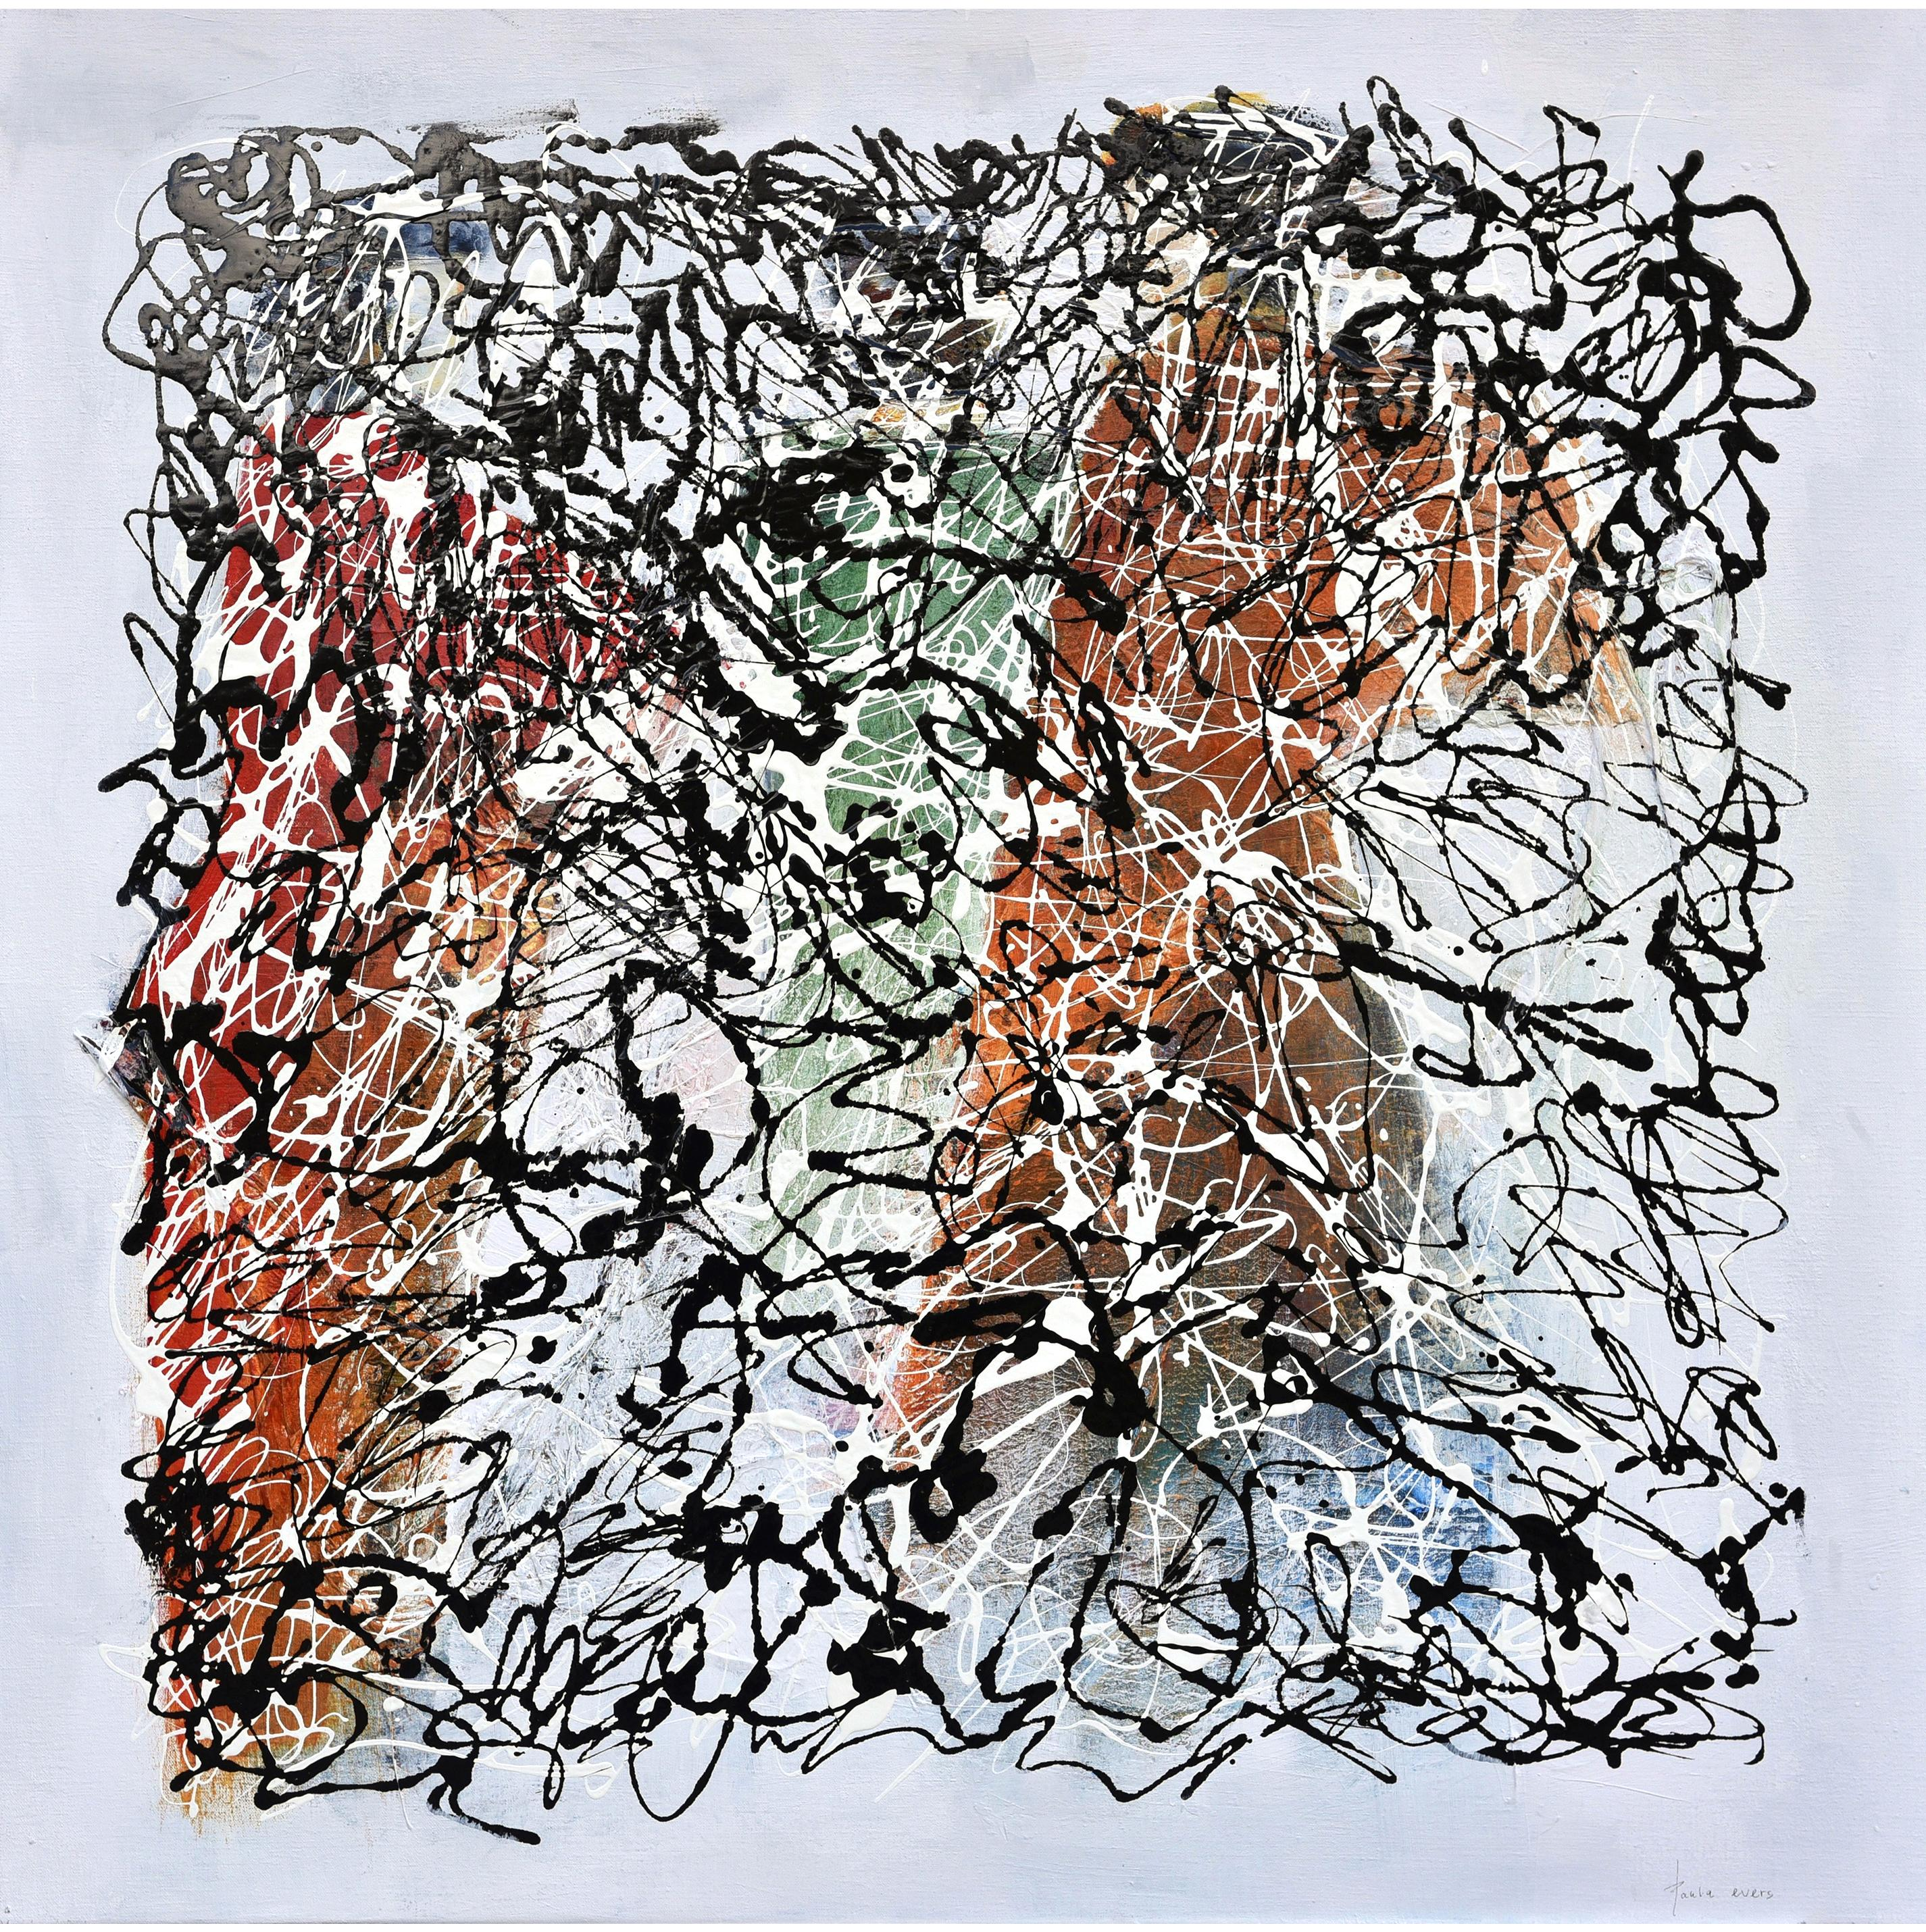 Energy VII in the style of J. Pollock